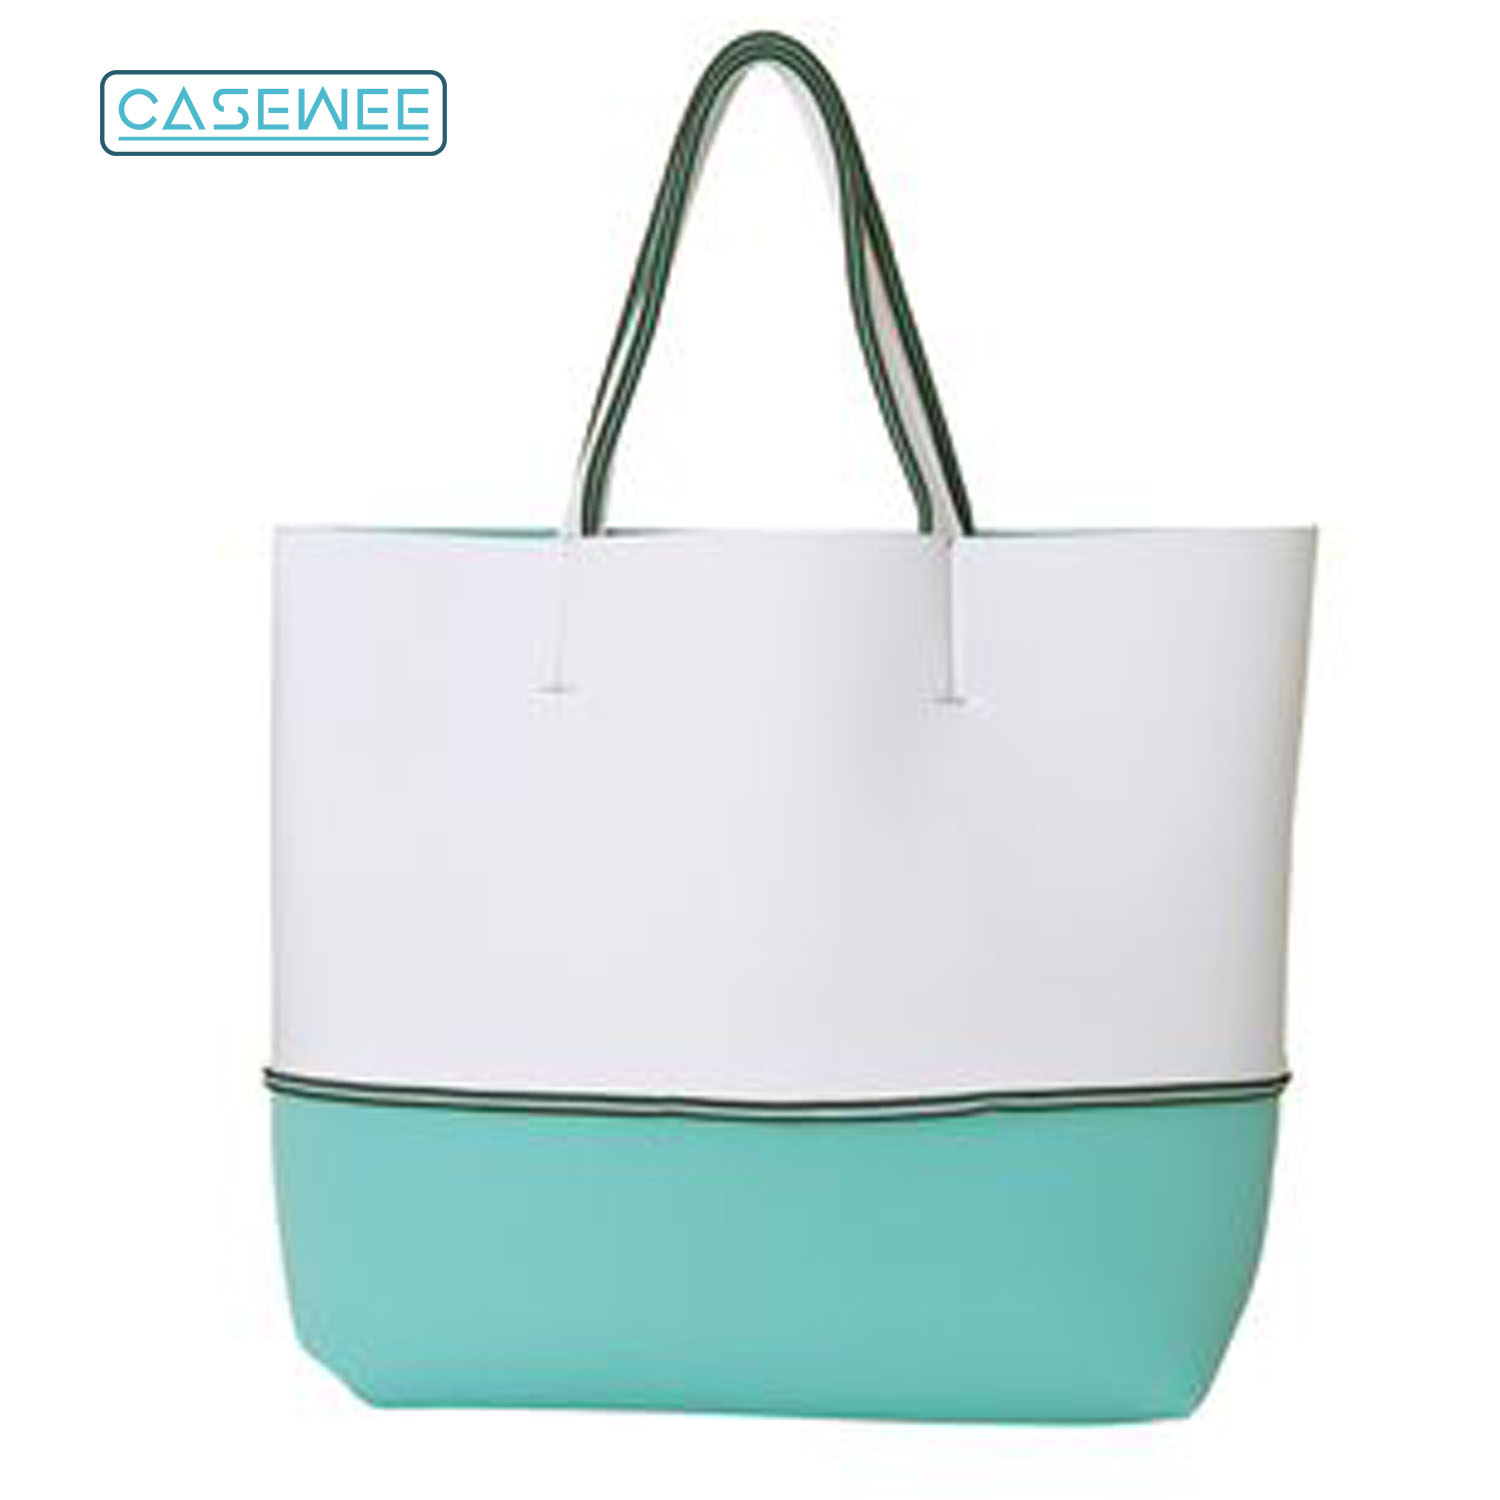 Casewee New Neoprene Shopping Bag Beach Bag